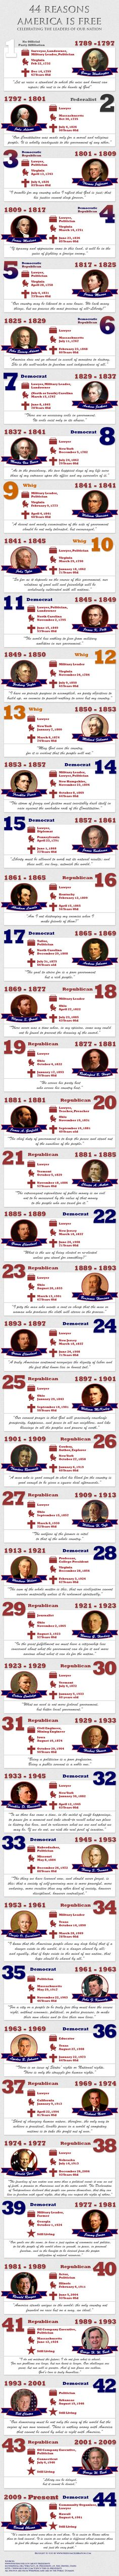 The US Presidents said things in the 1800's that apply just as much in 2013 as they did back then. Happy Presidents Day!